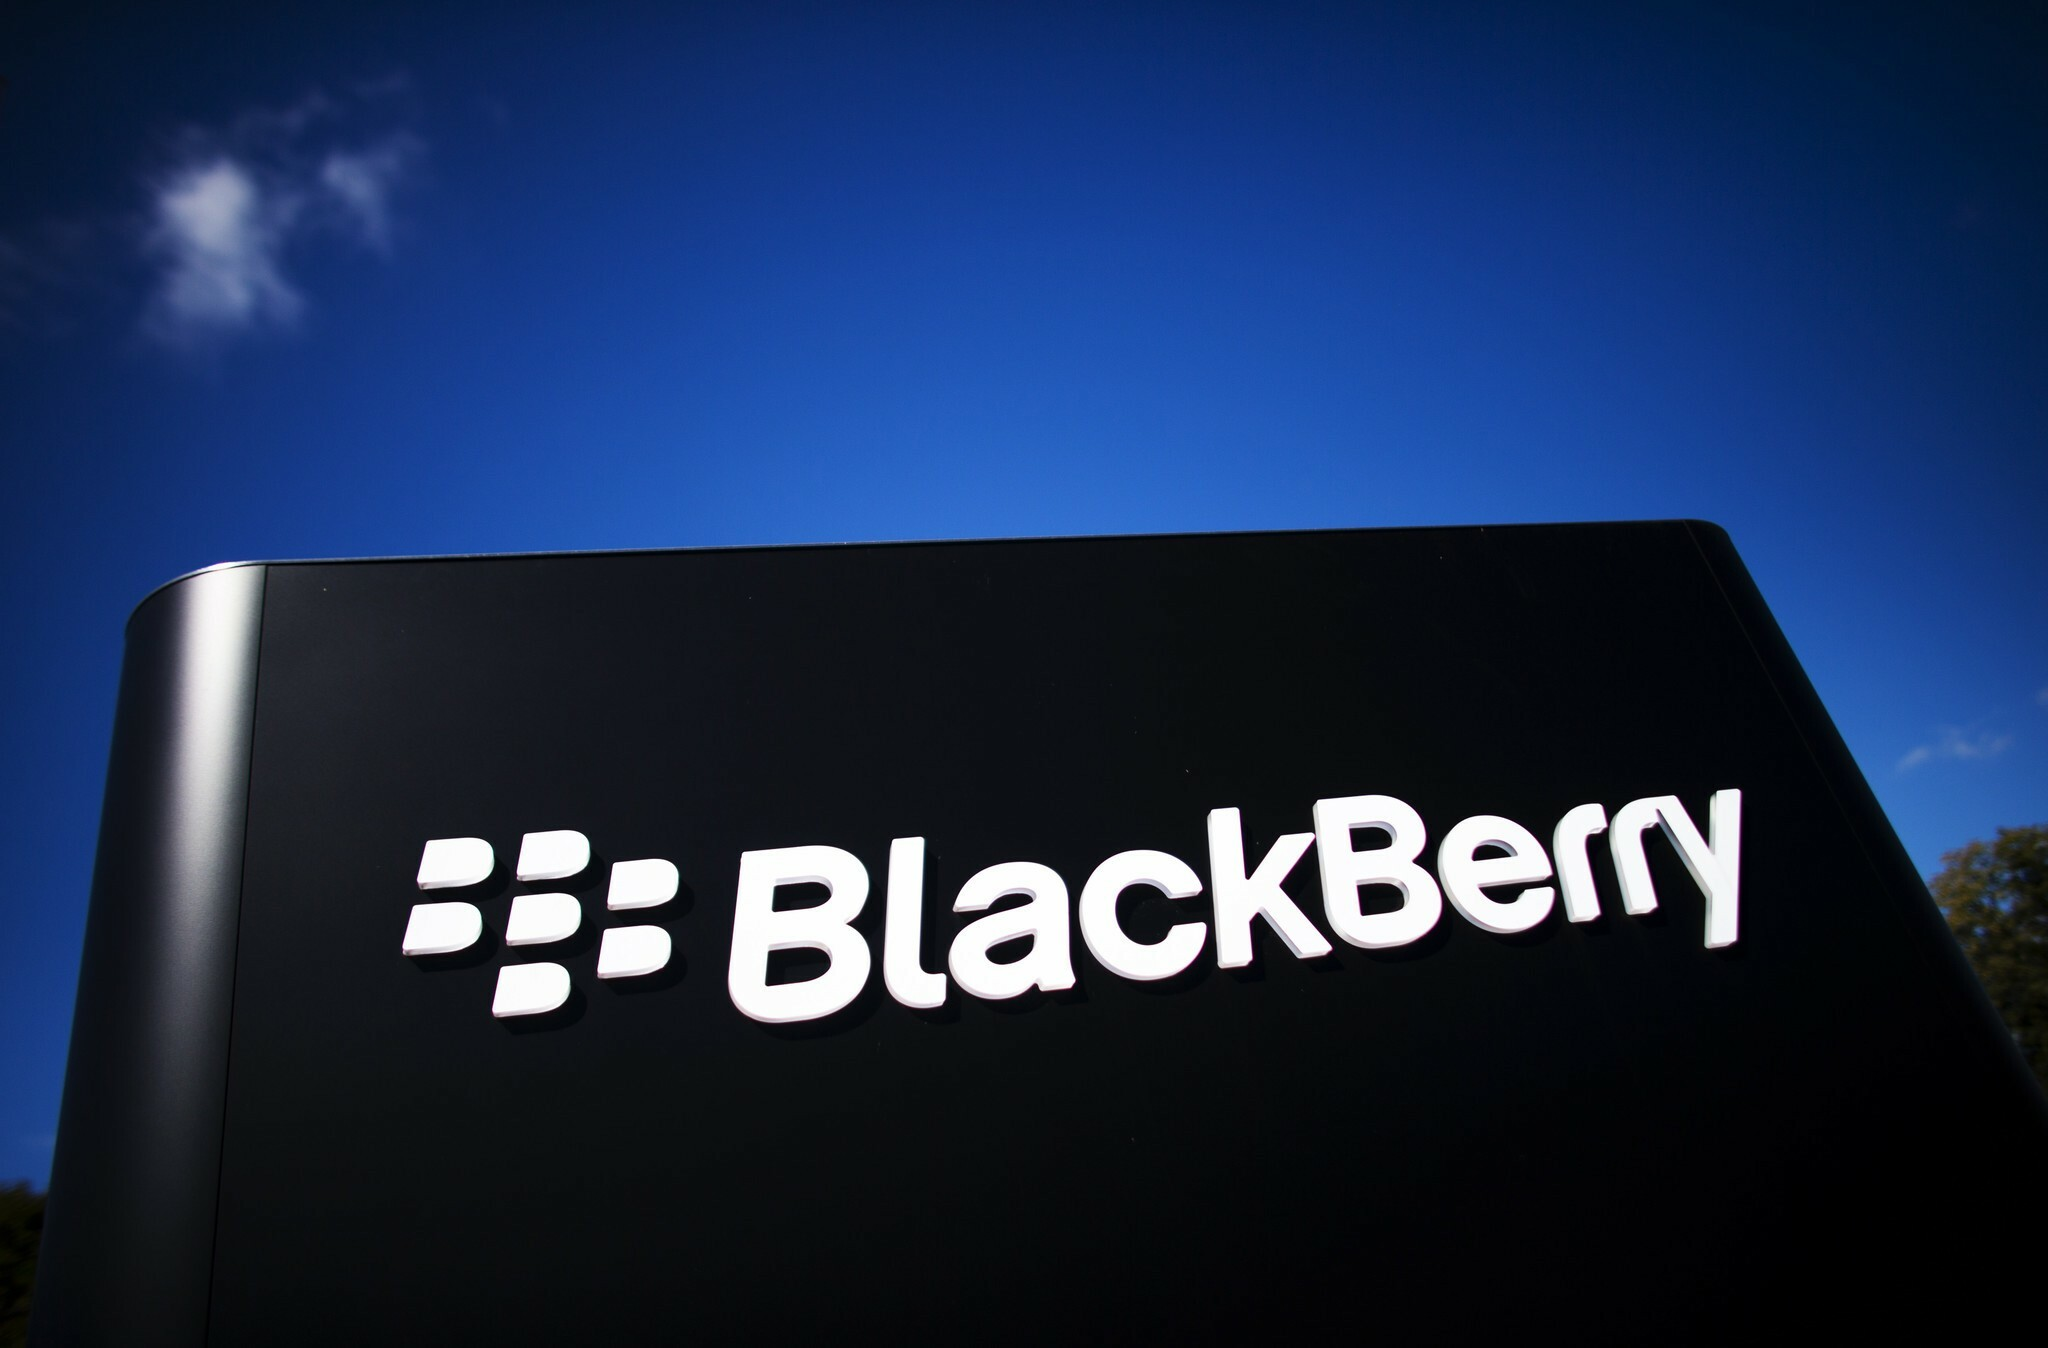 BlackBerry to announce Q4 and Fiscal Year 2018 Results on March 28, 2018